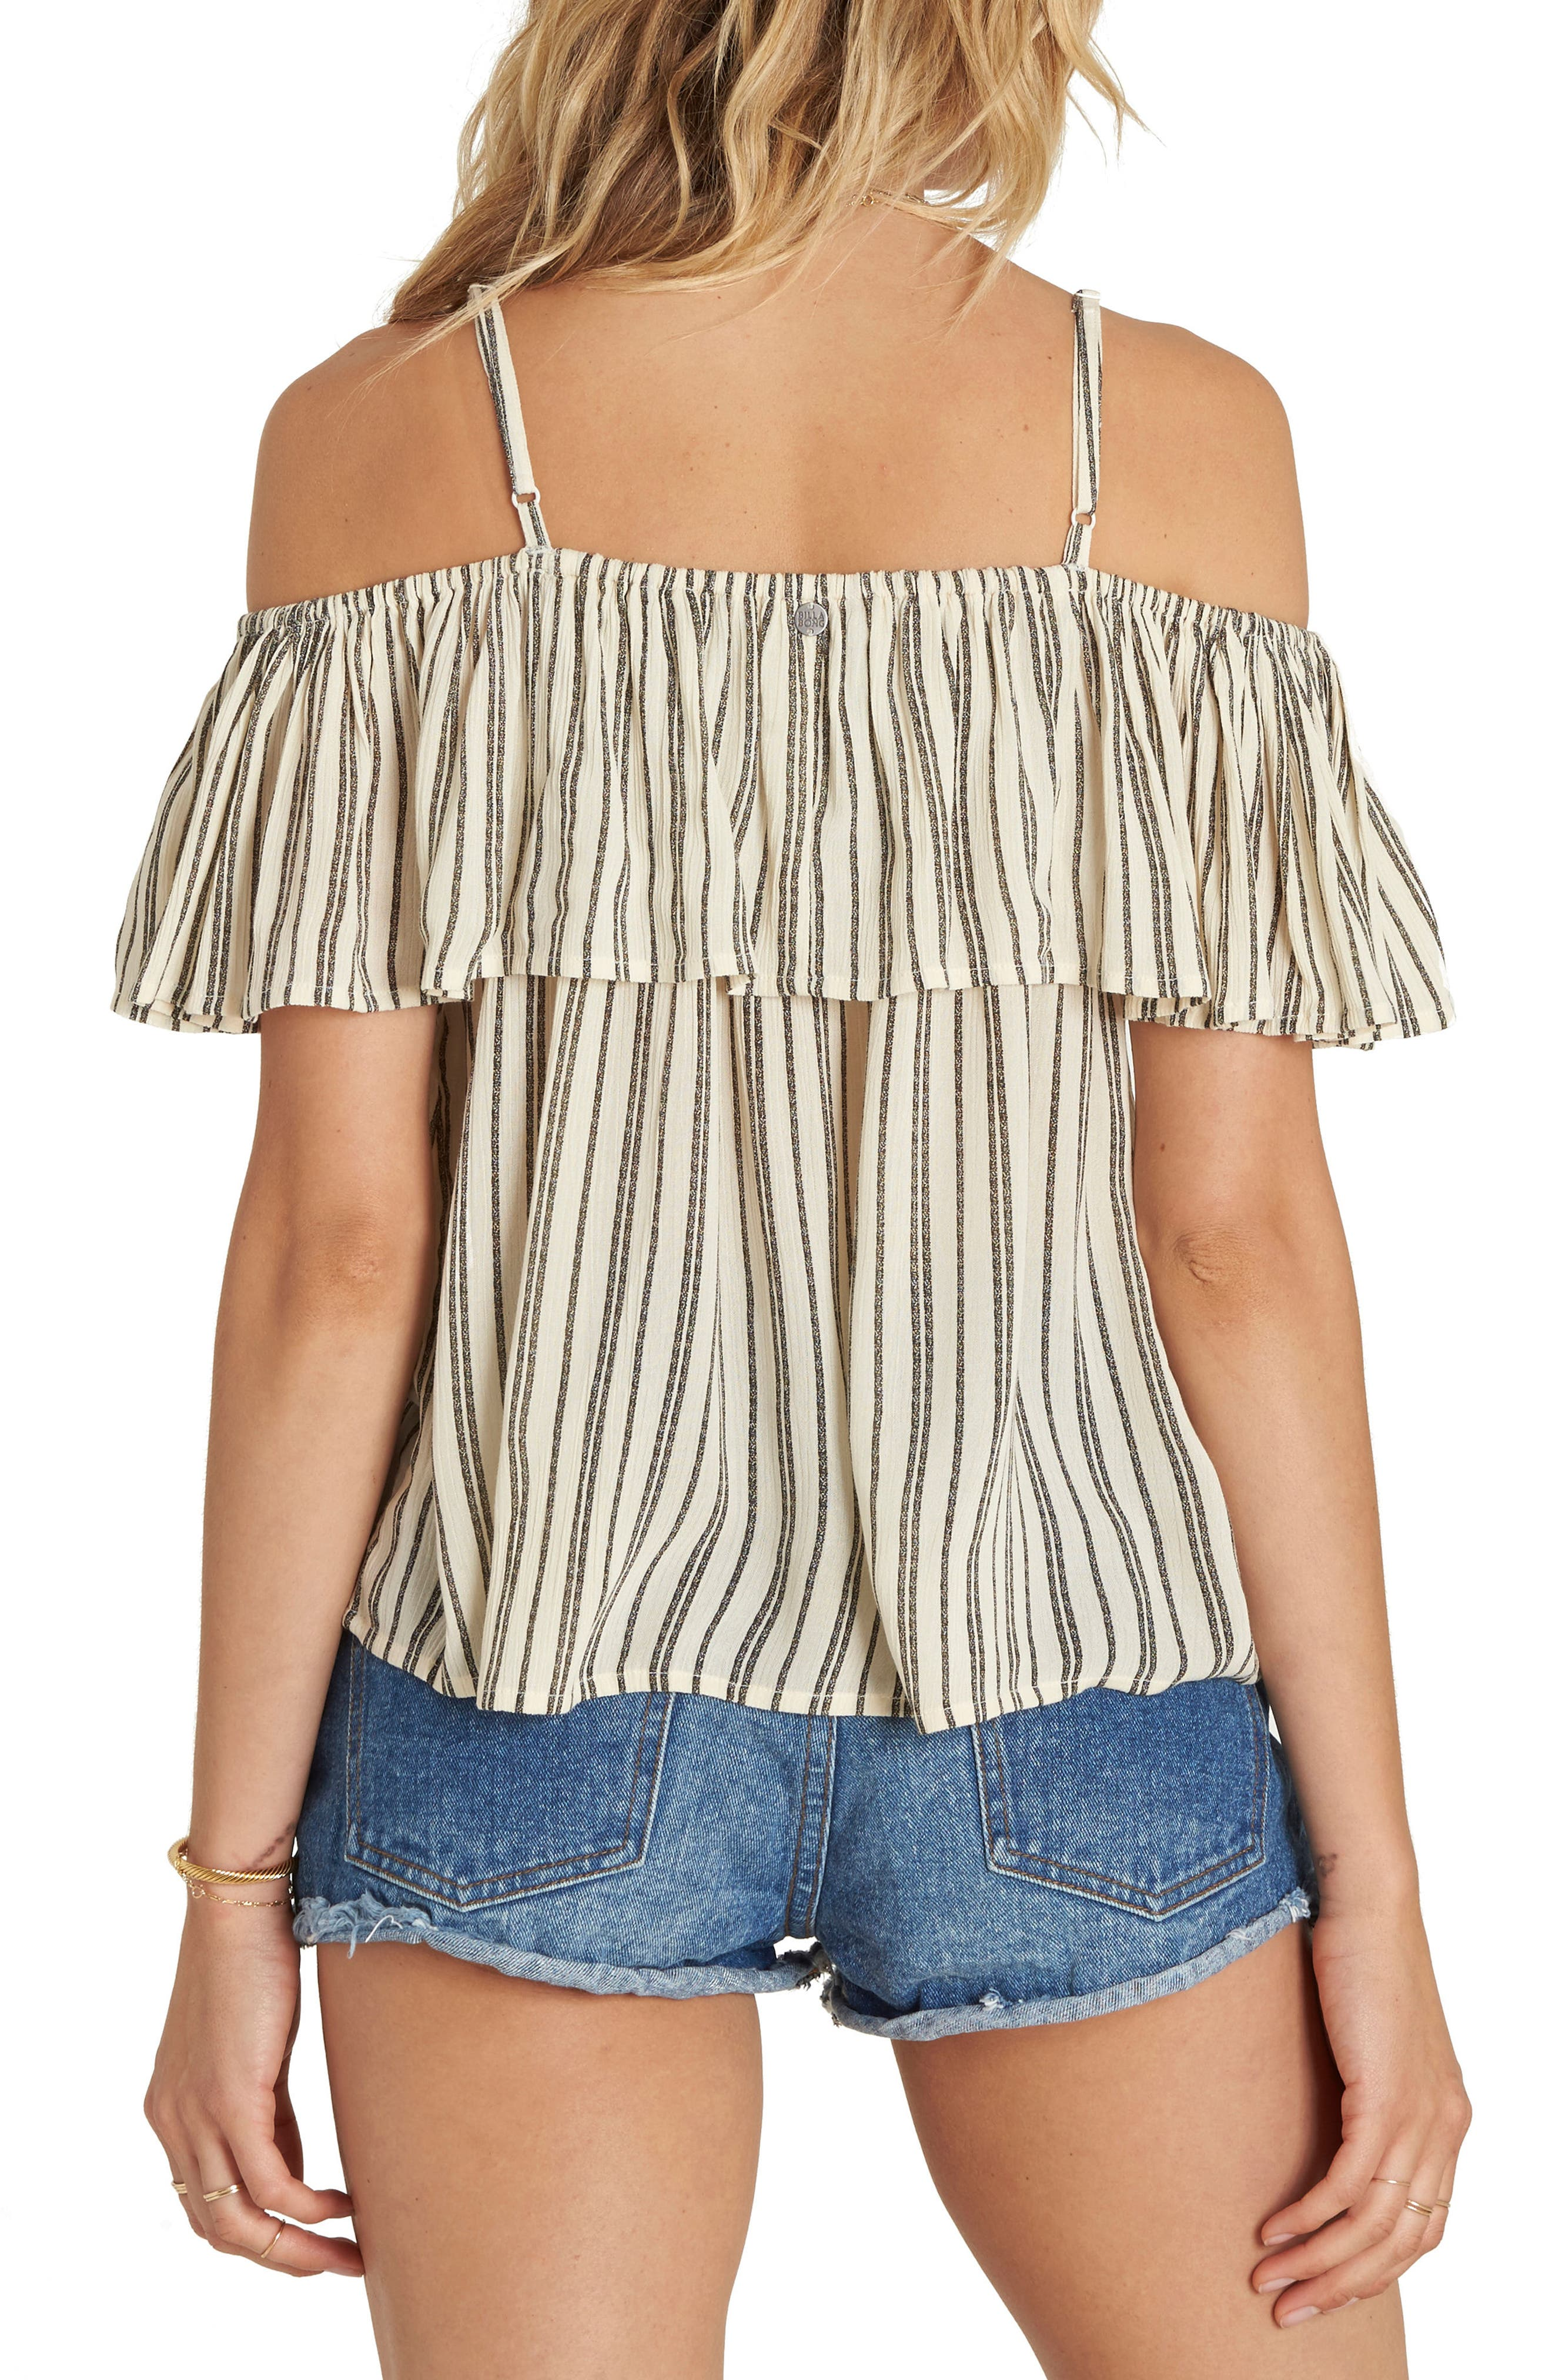 Summer Sunsets Ruffle Off the Shoulder Top,                             Alternate thumbnail 2, color,                             190